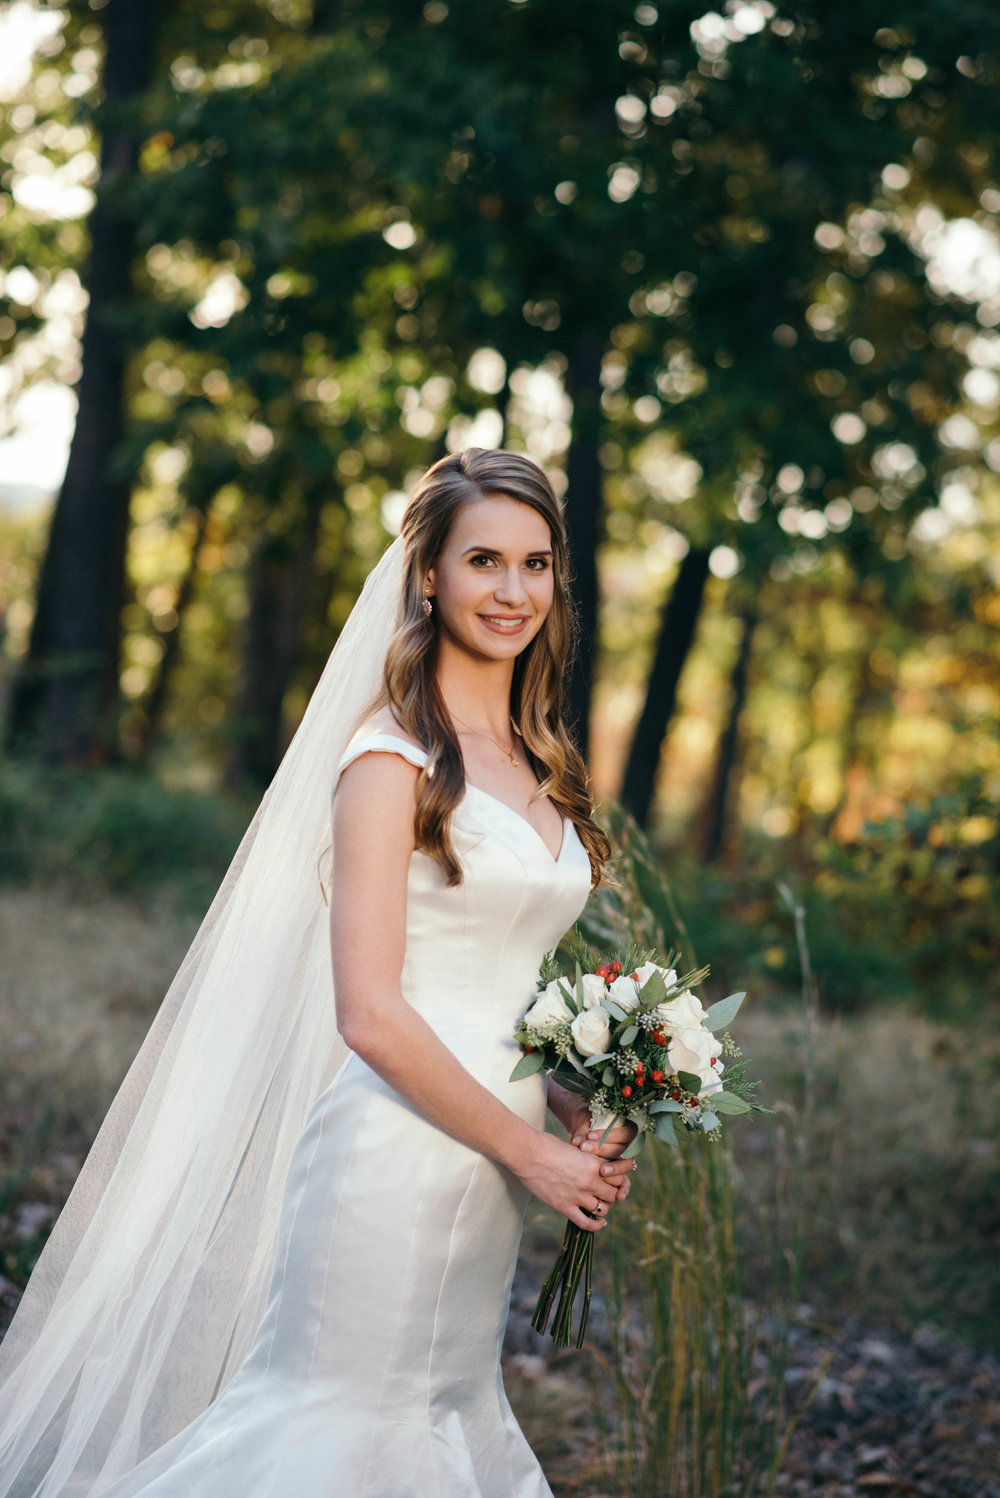 JuliaWilliams|Bridals|Color_MiraPhotographs-55.jpg